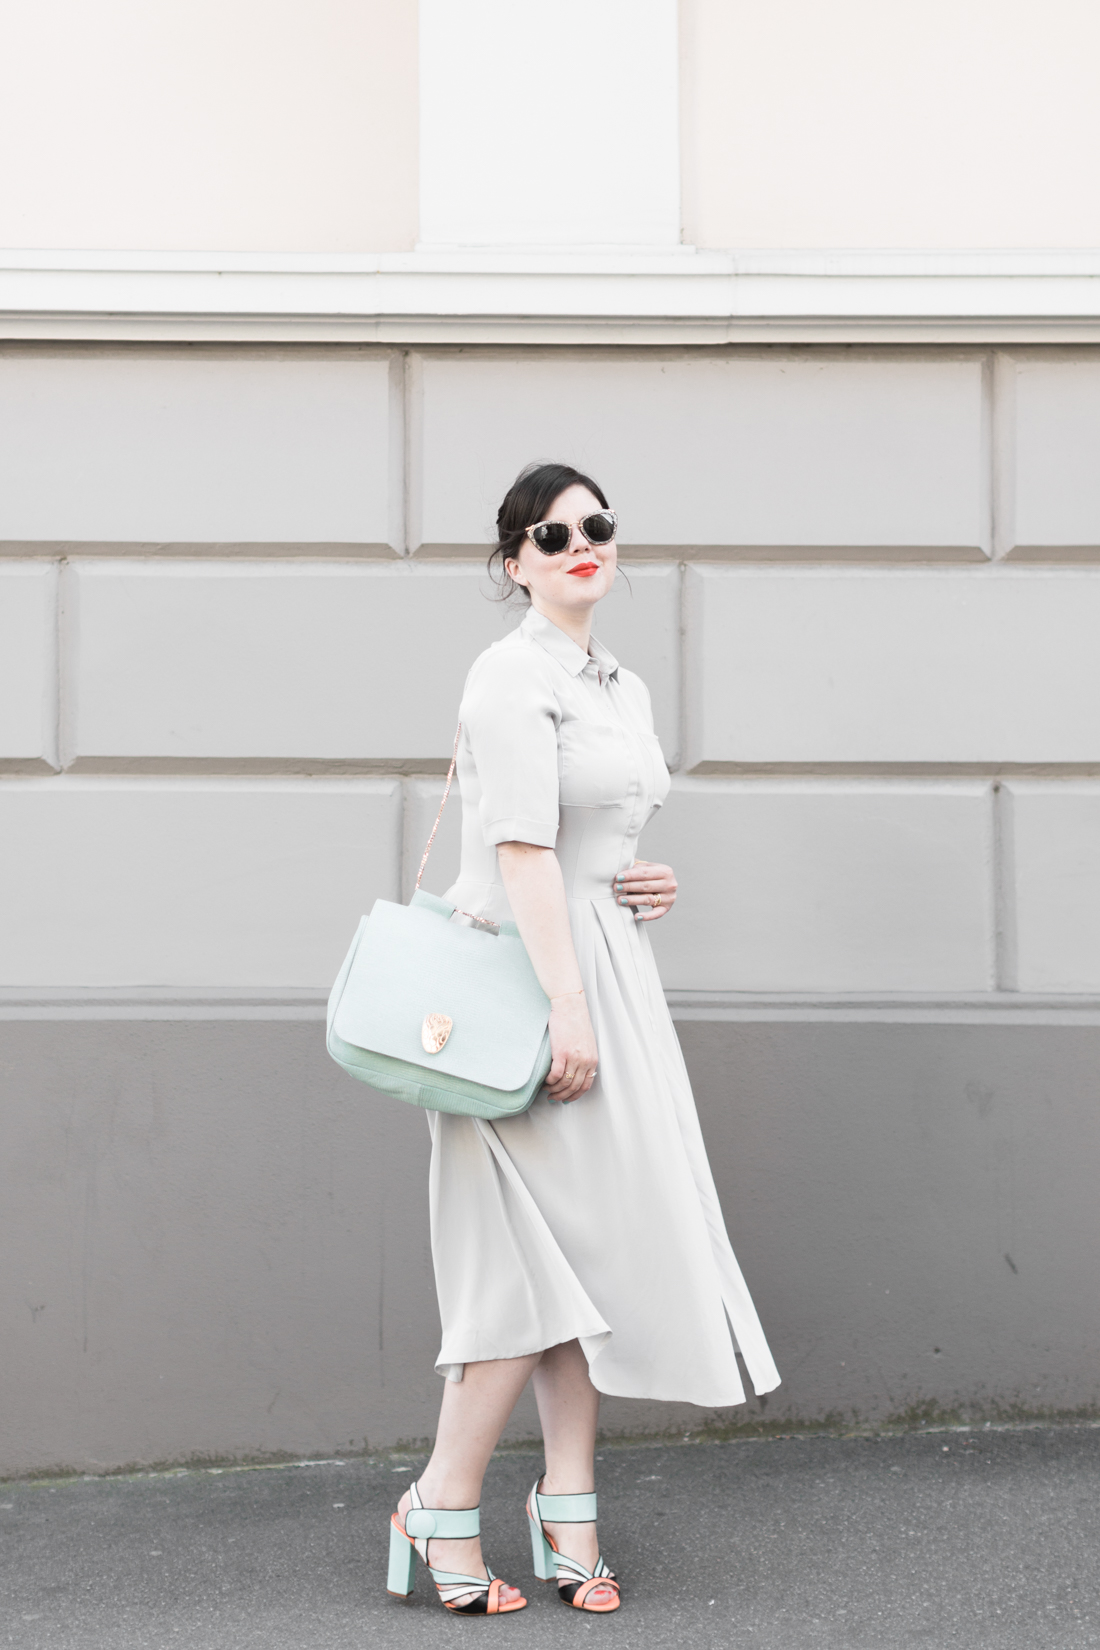 1100 mint cosmoparis rose et josephine sac robe ybd kelly love copyright photos Pauline paulinefashionblog.com 3 Mint